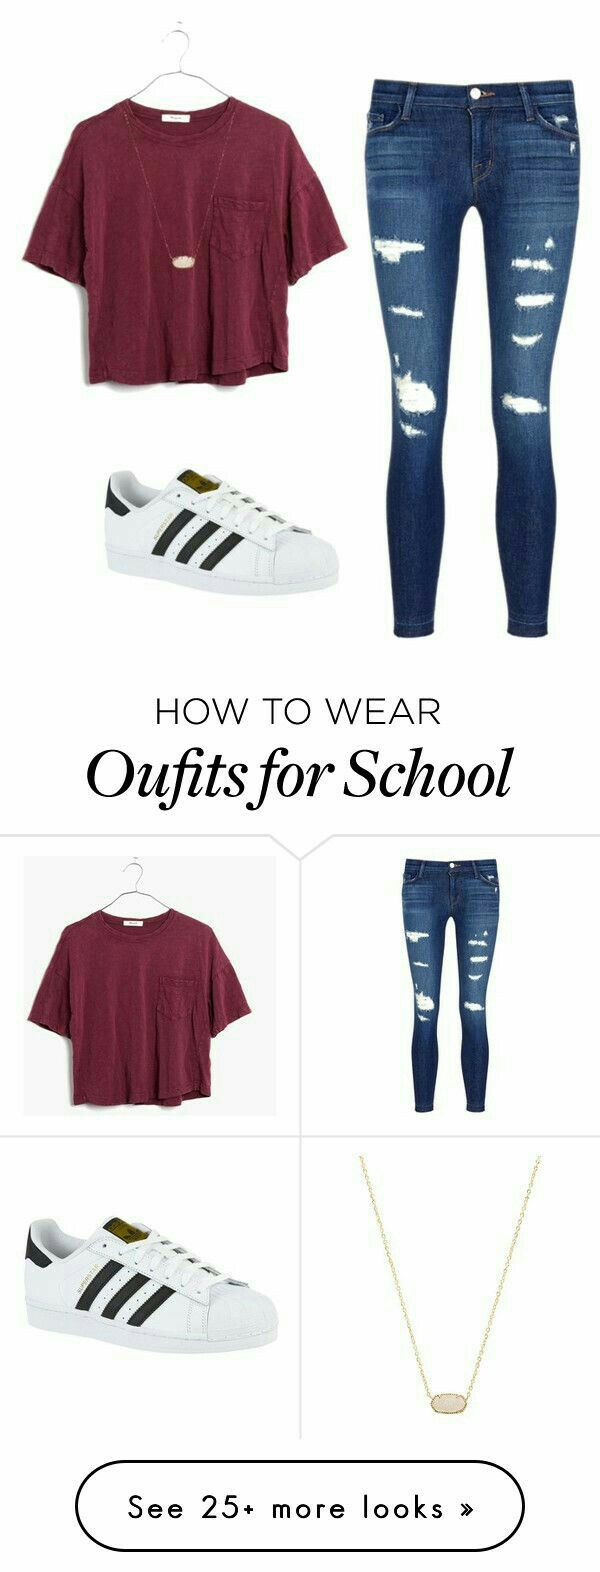 How to wear school outfits only wear the ripped jeans to school of your school dress code allows it!!!!!!!! #howtowear